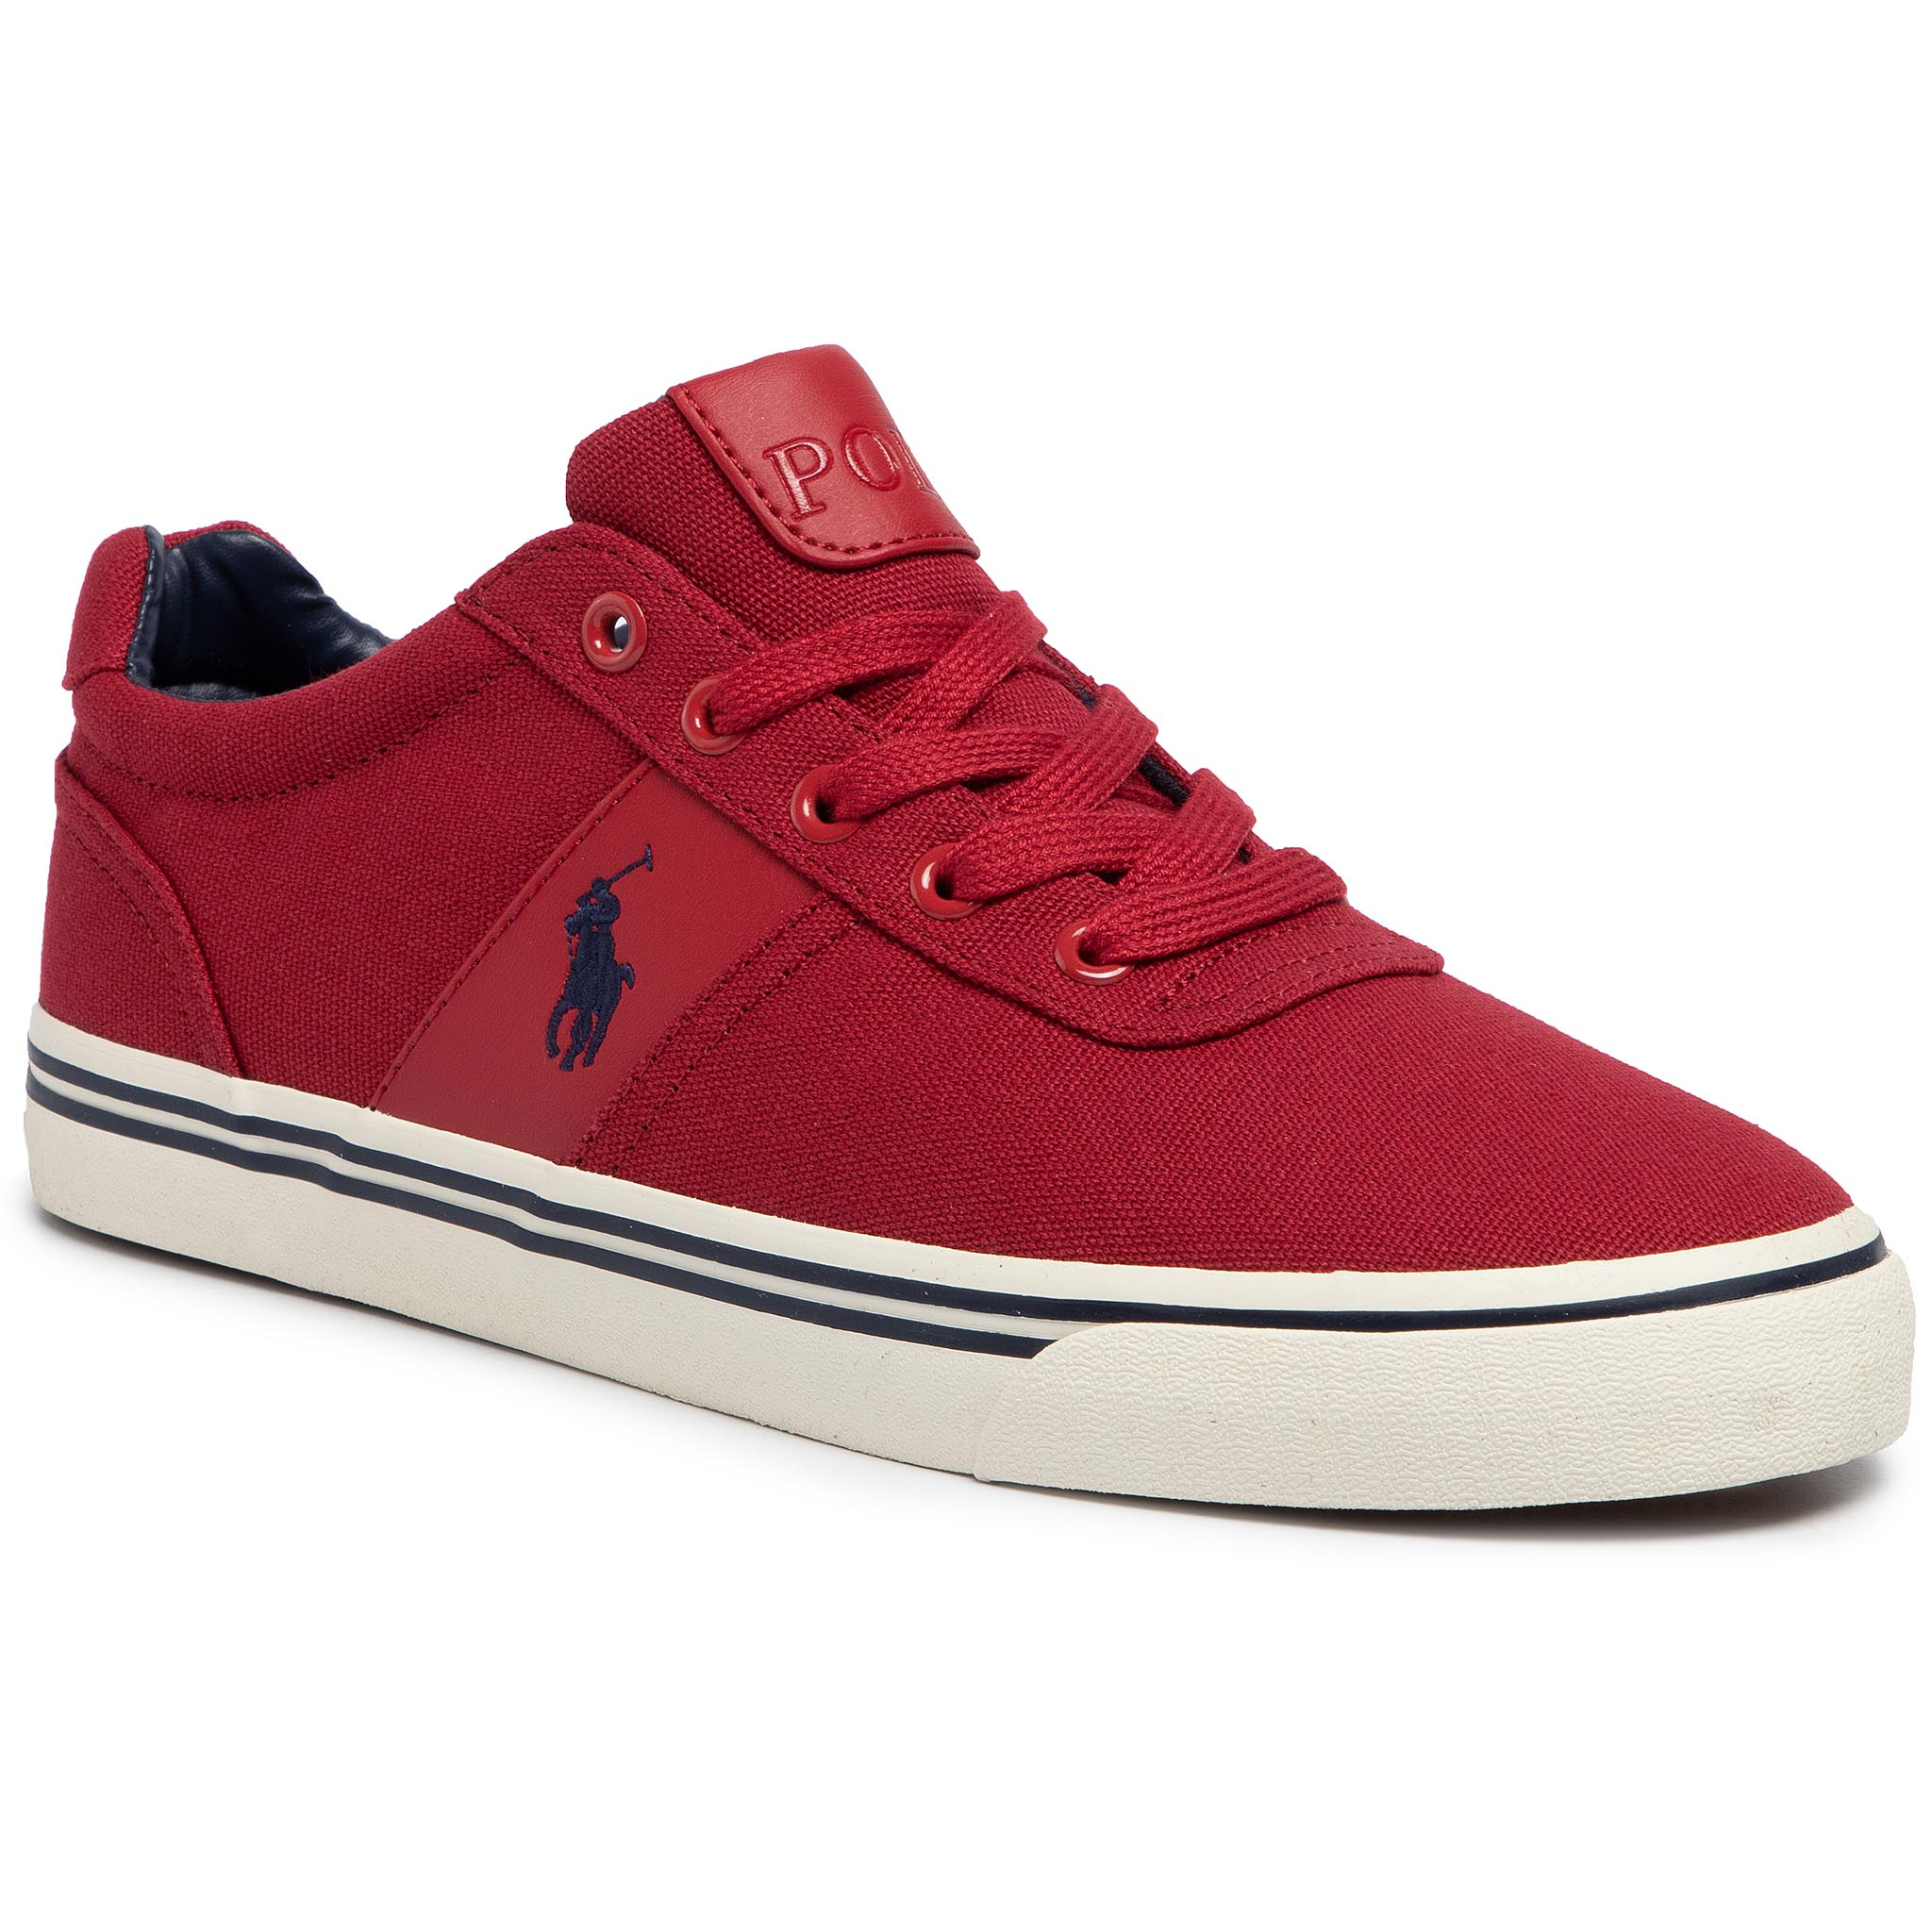 Teniși POLO RALPH LAUREN - Hanford 816508049003 Devon Red